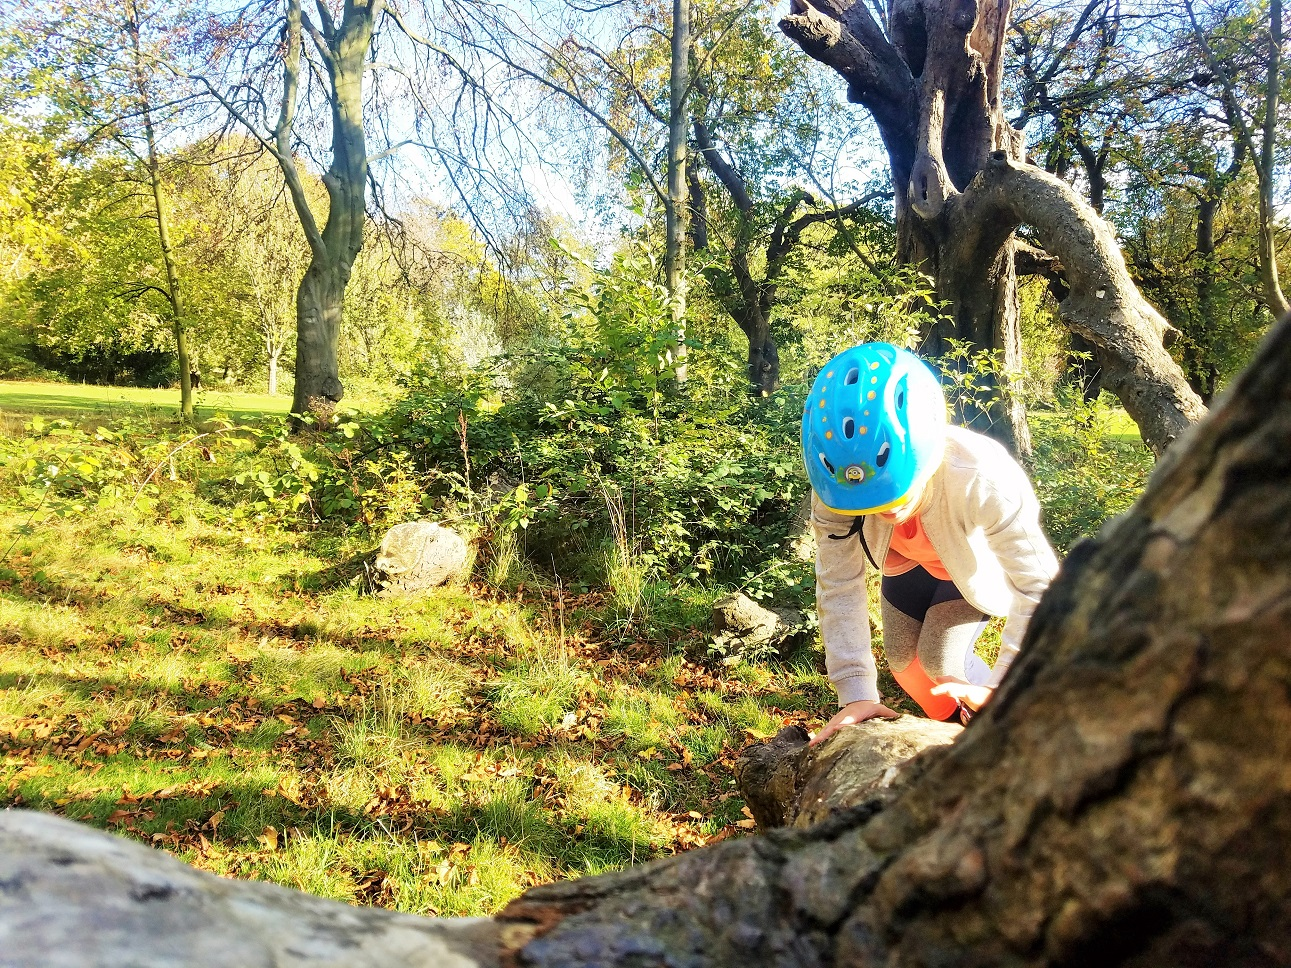 Treat children like adults by being respectful - child crawling along a tree branch